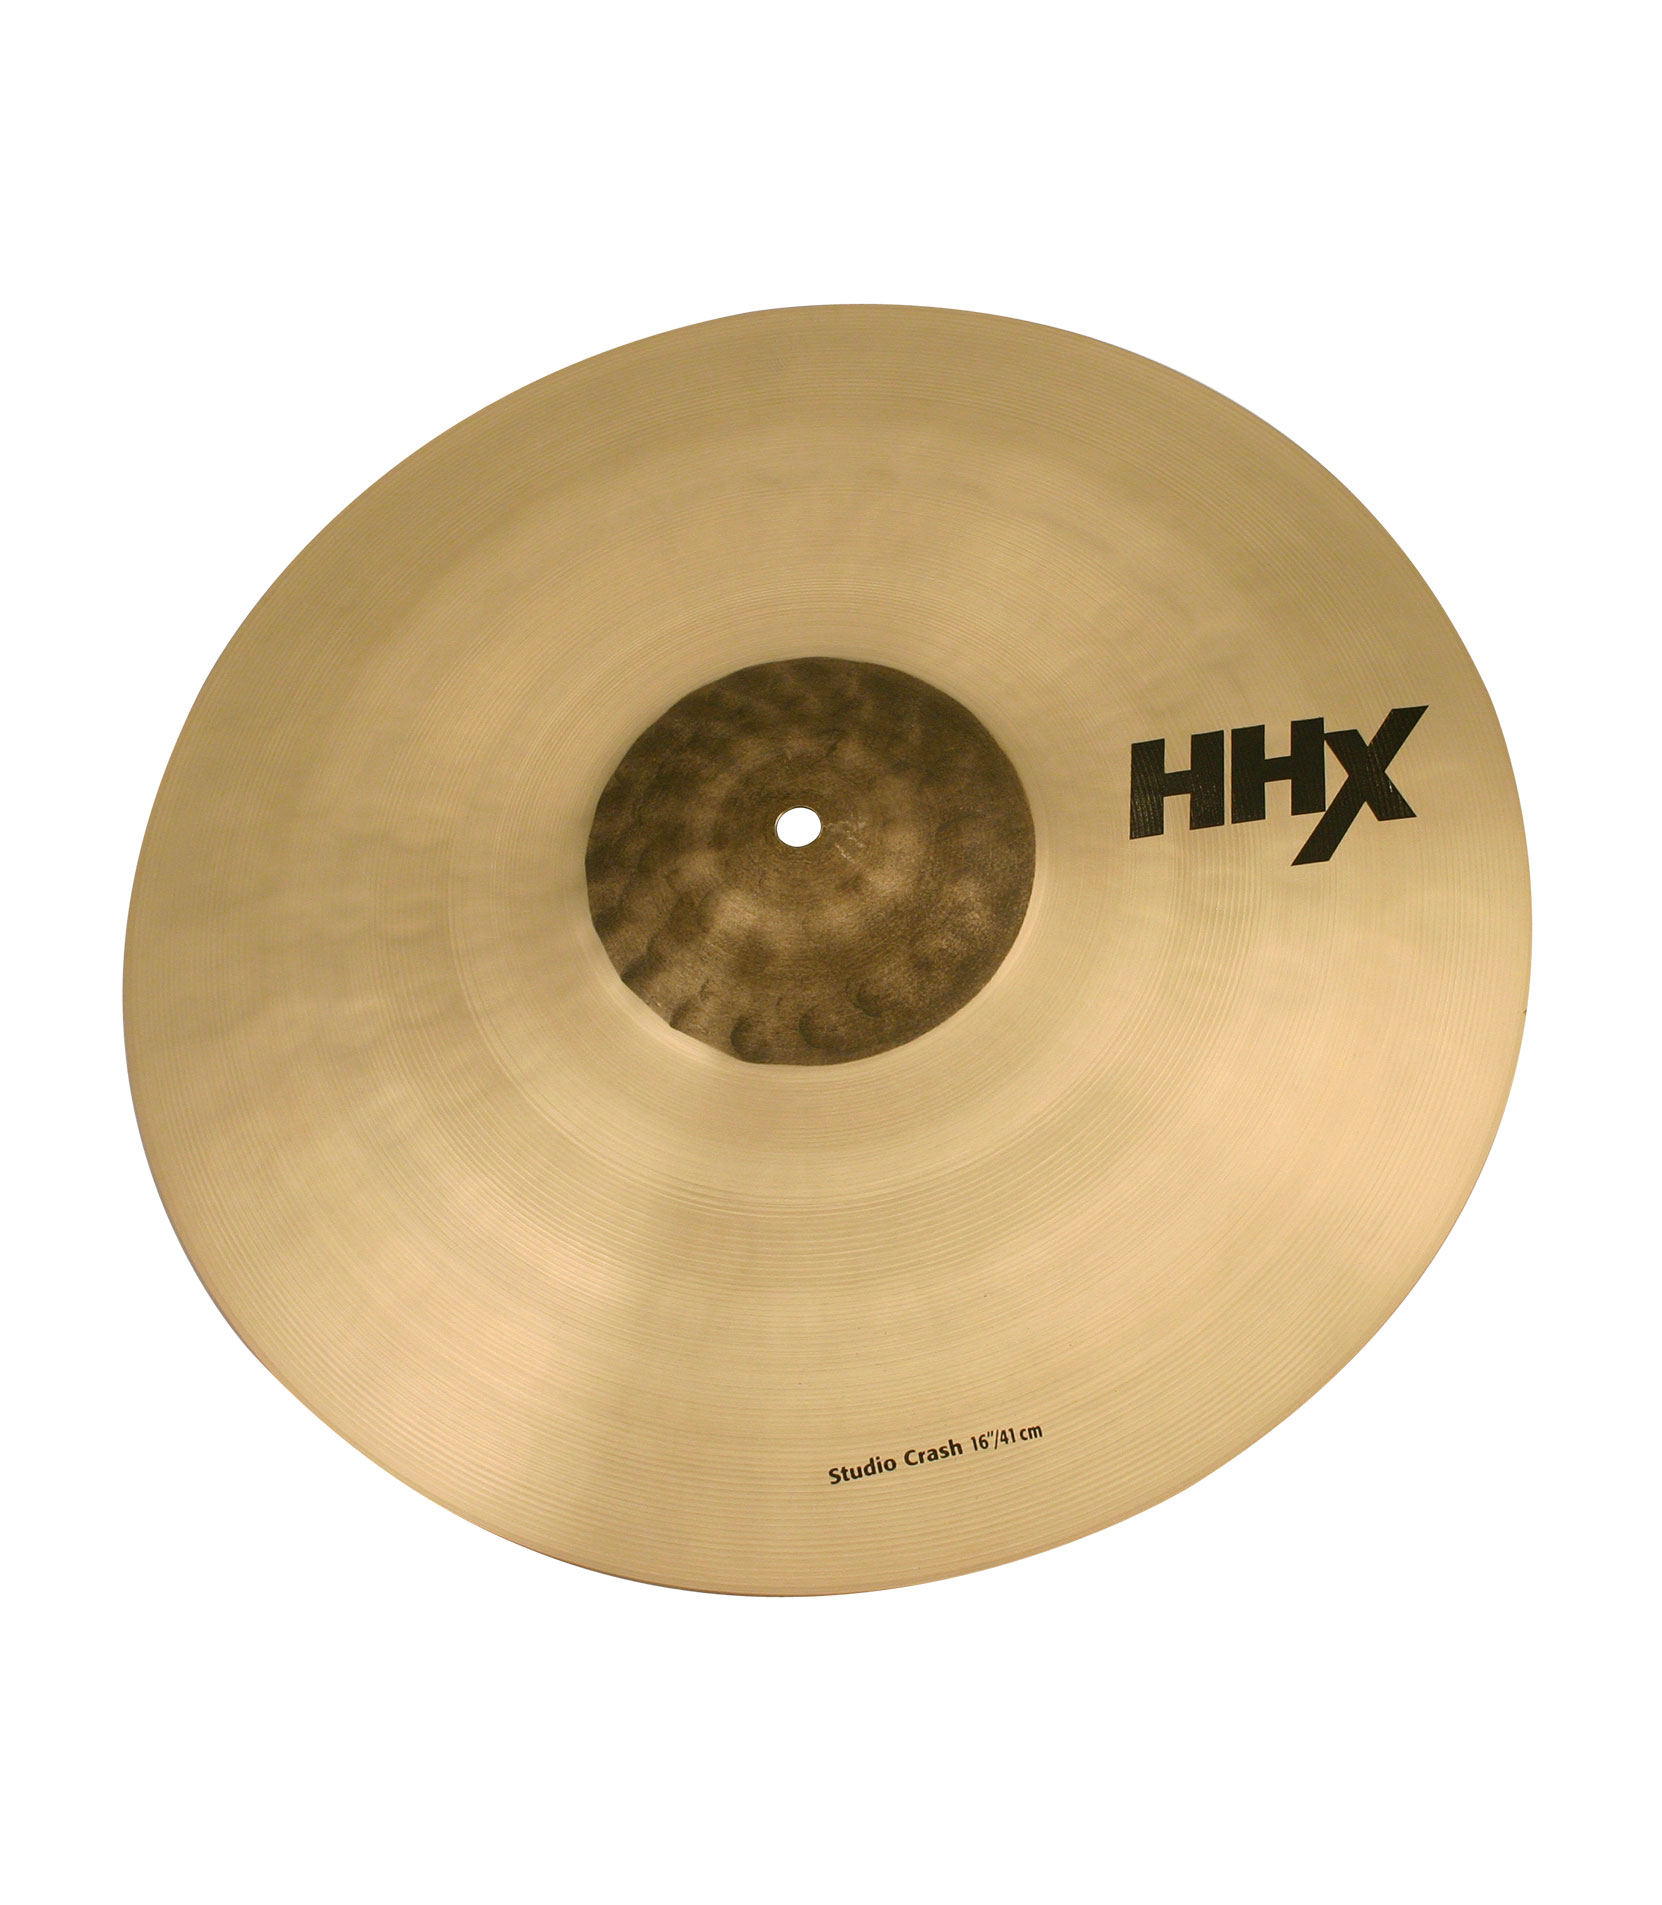 sabian - 16 HHX Studio Crash - Melody House Musical Instruments